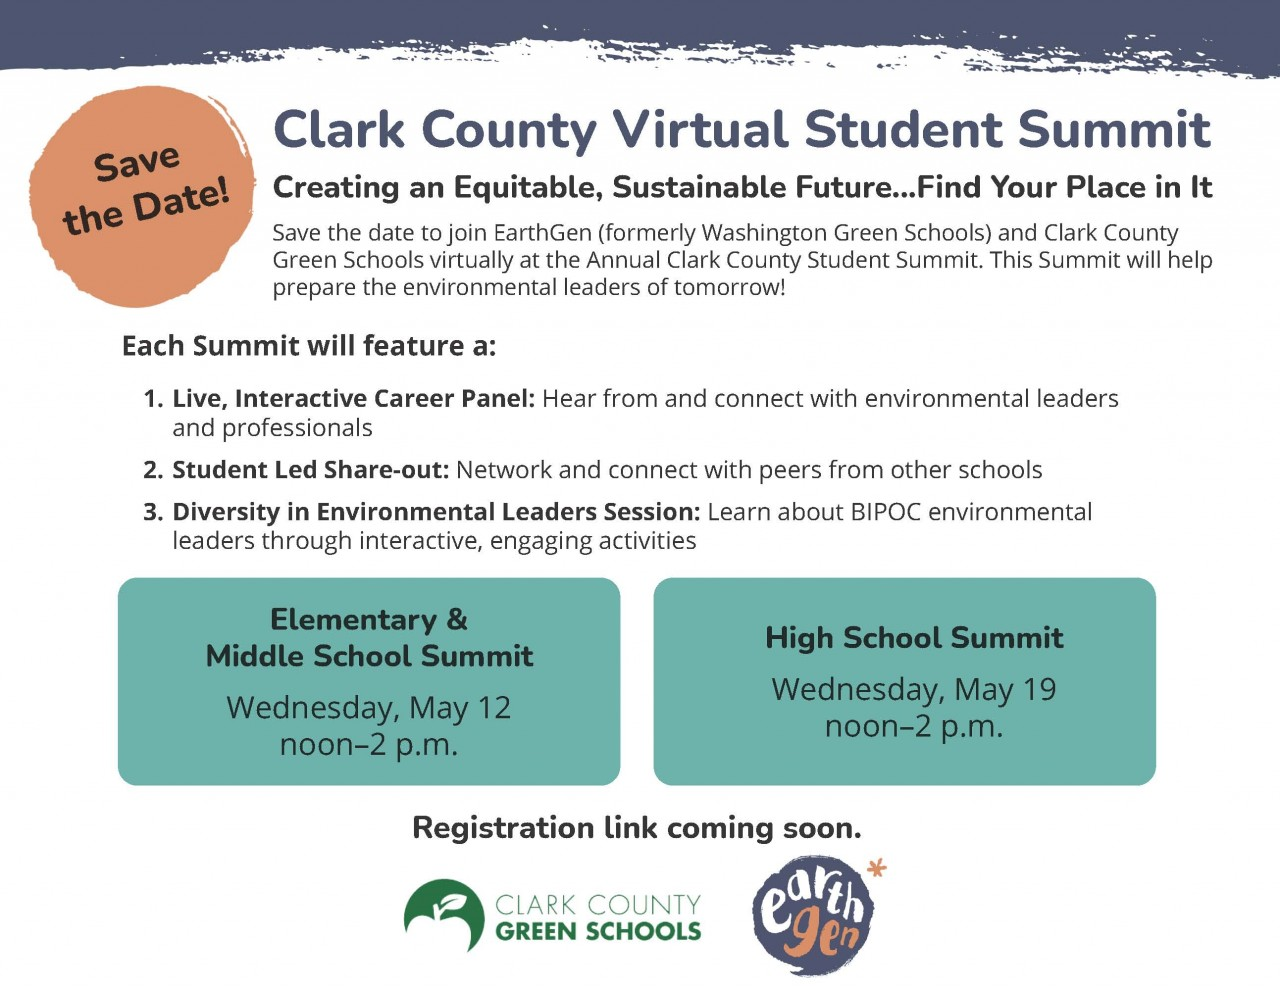 Virtual Student Summit announced - Save the date!